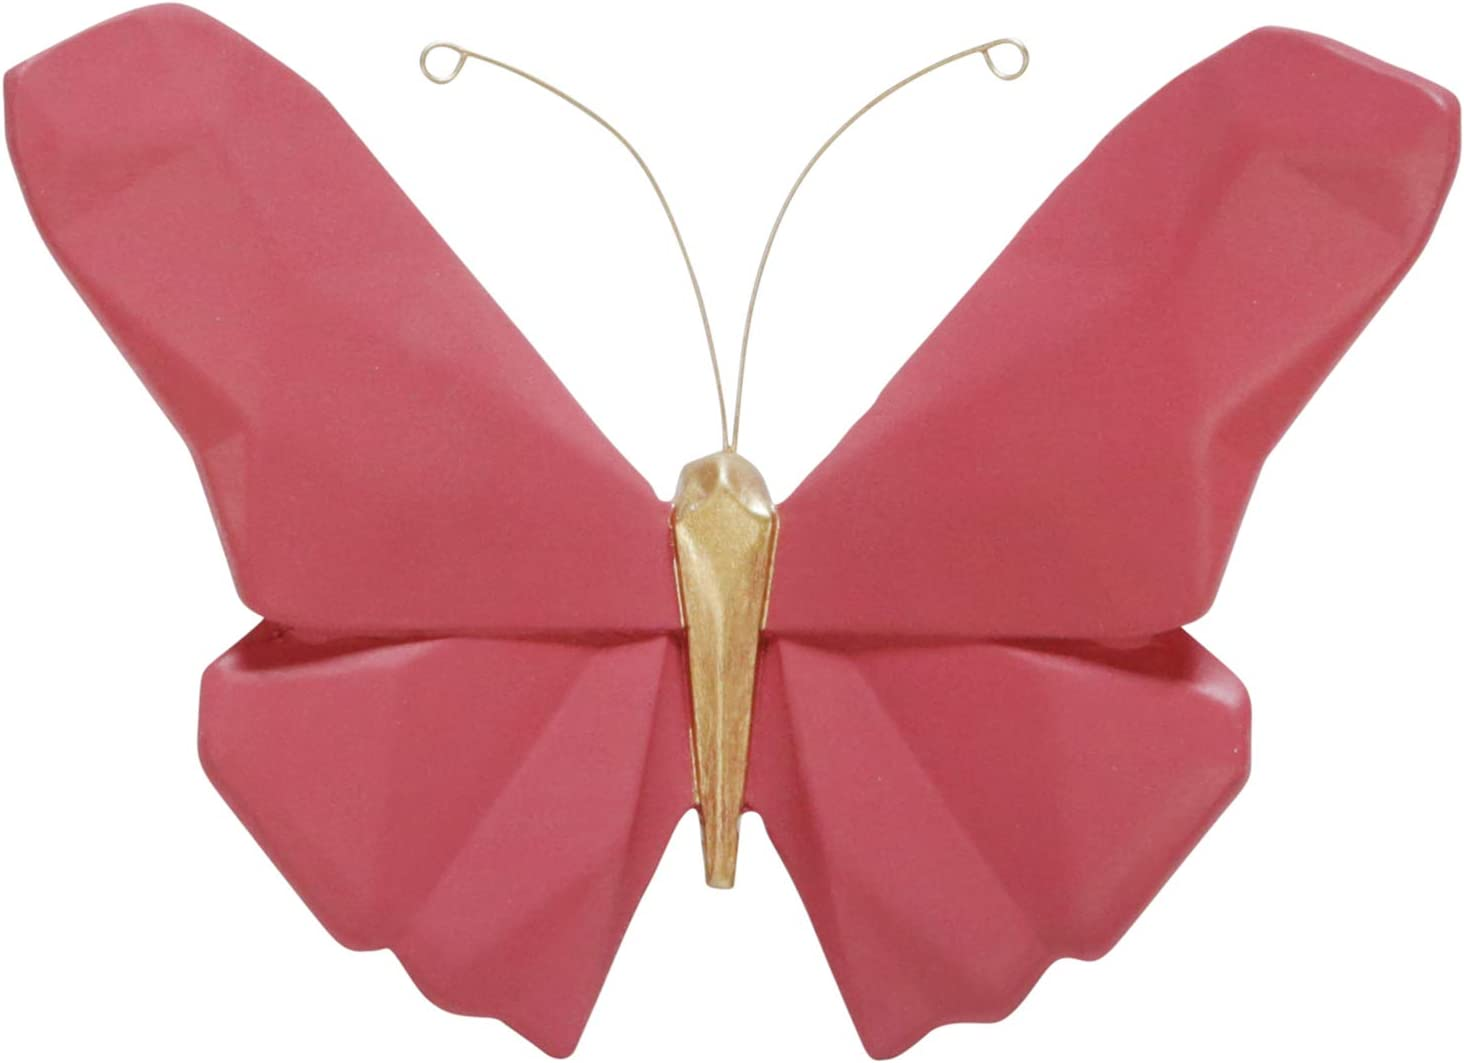 """Sagebrook Home 14704-08 Resin 6"""" W Origami Butterfly Wall Decor, Pink, 6"""" L x 2.5"""" W x 4.5"""" H"""